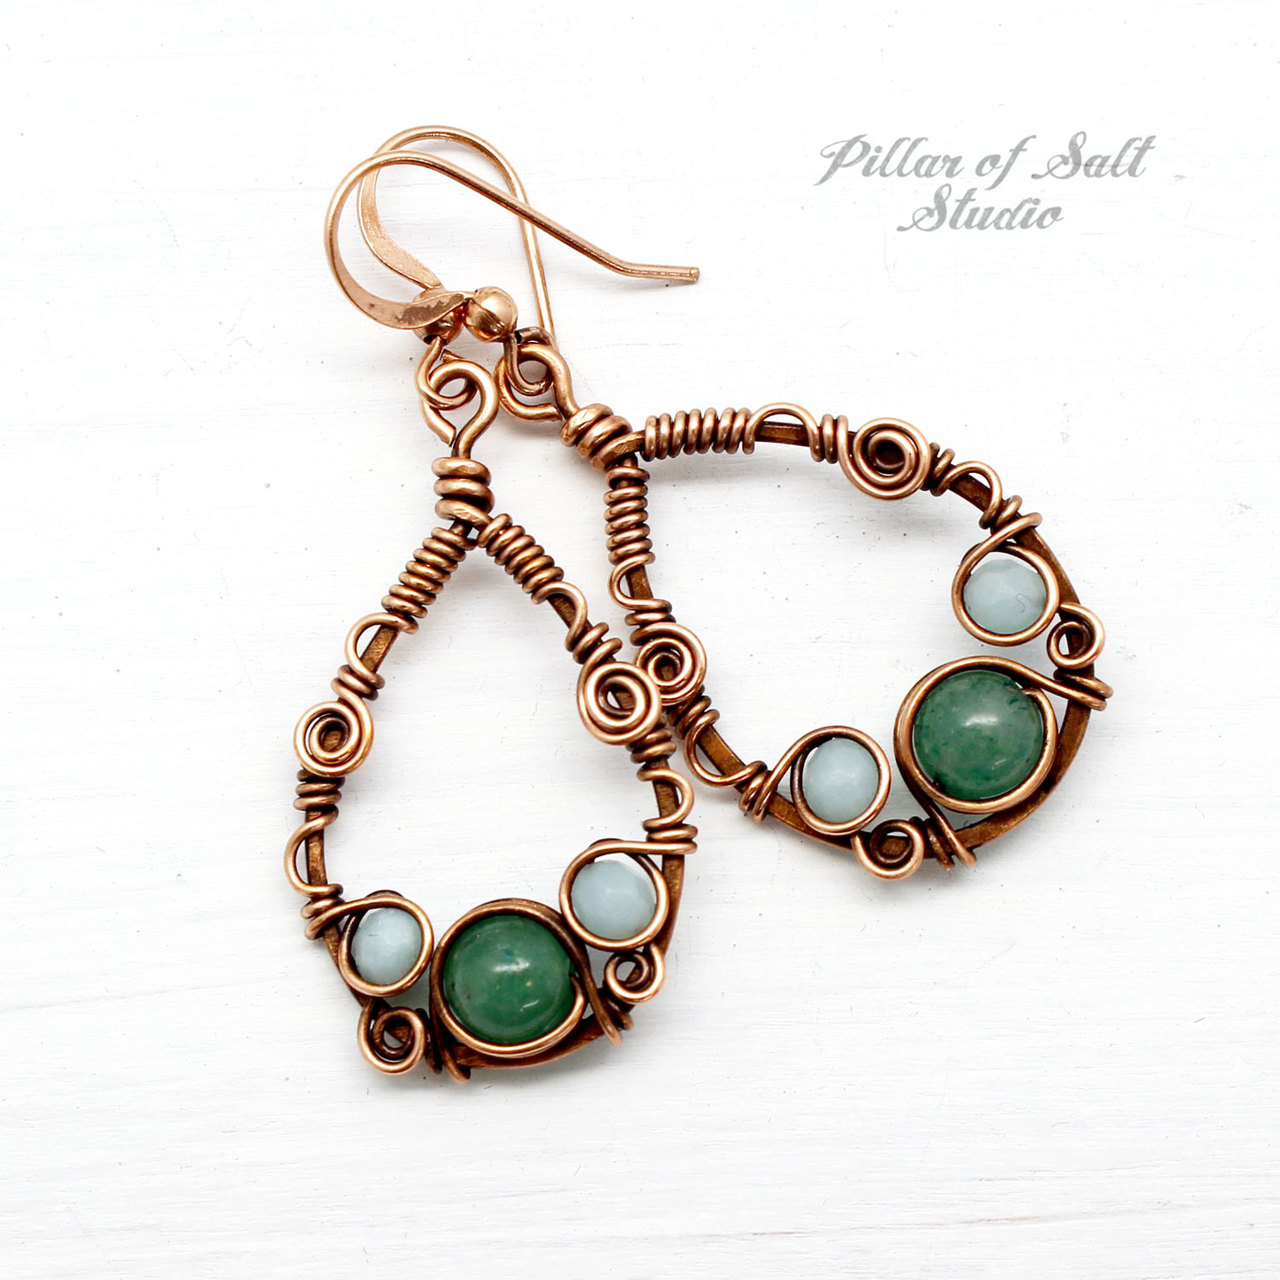 Also available in copper